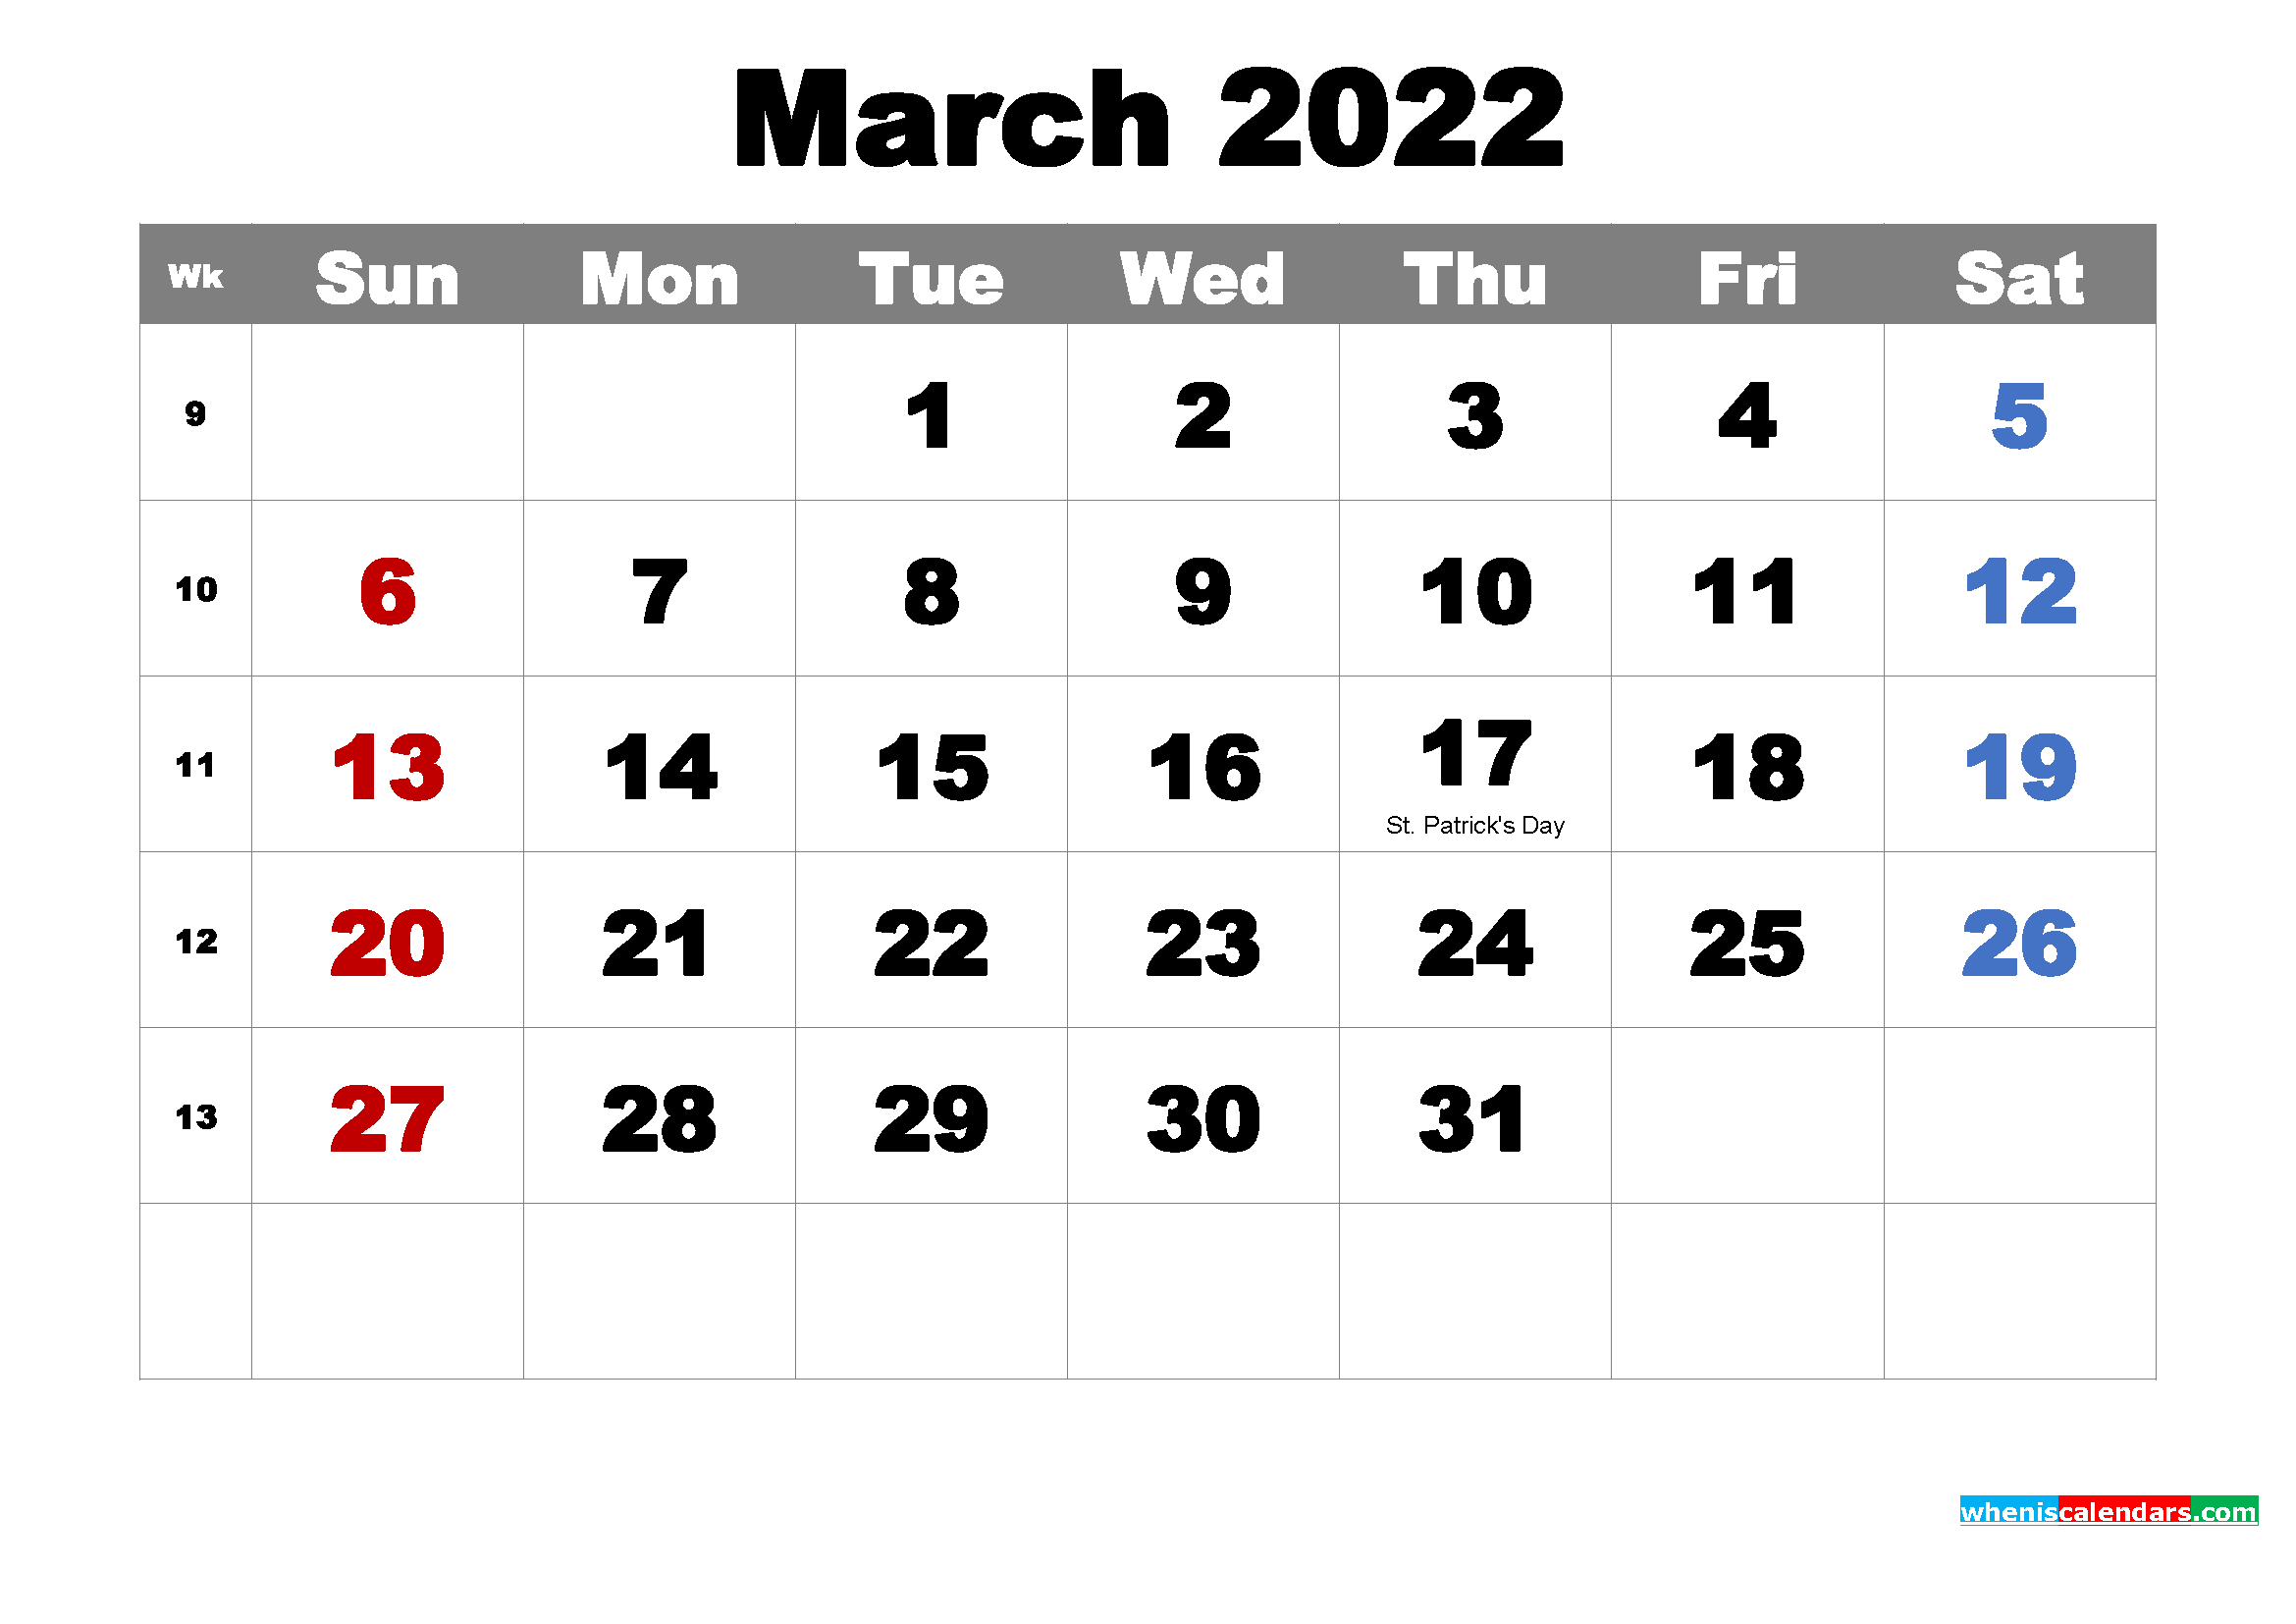 Holiday information provided by the almanac office at university of helsinki. Free Printable March 2022 Calendar with Holidays as Word, PDF